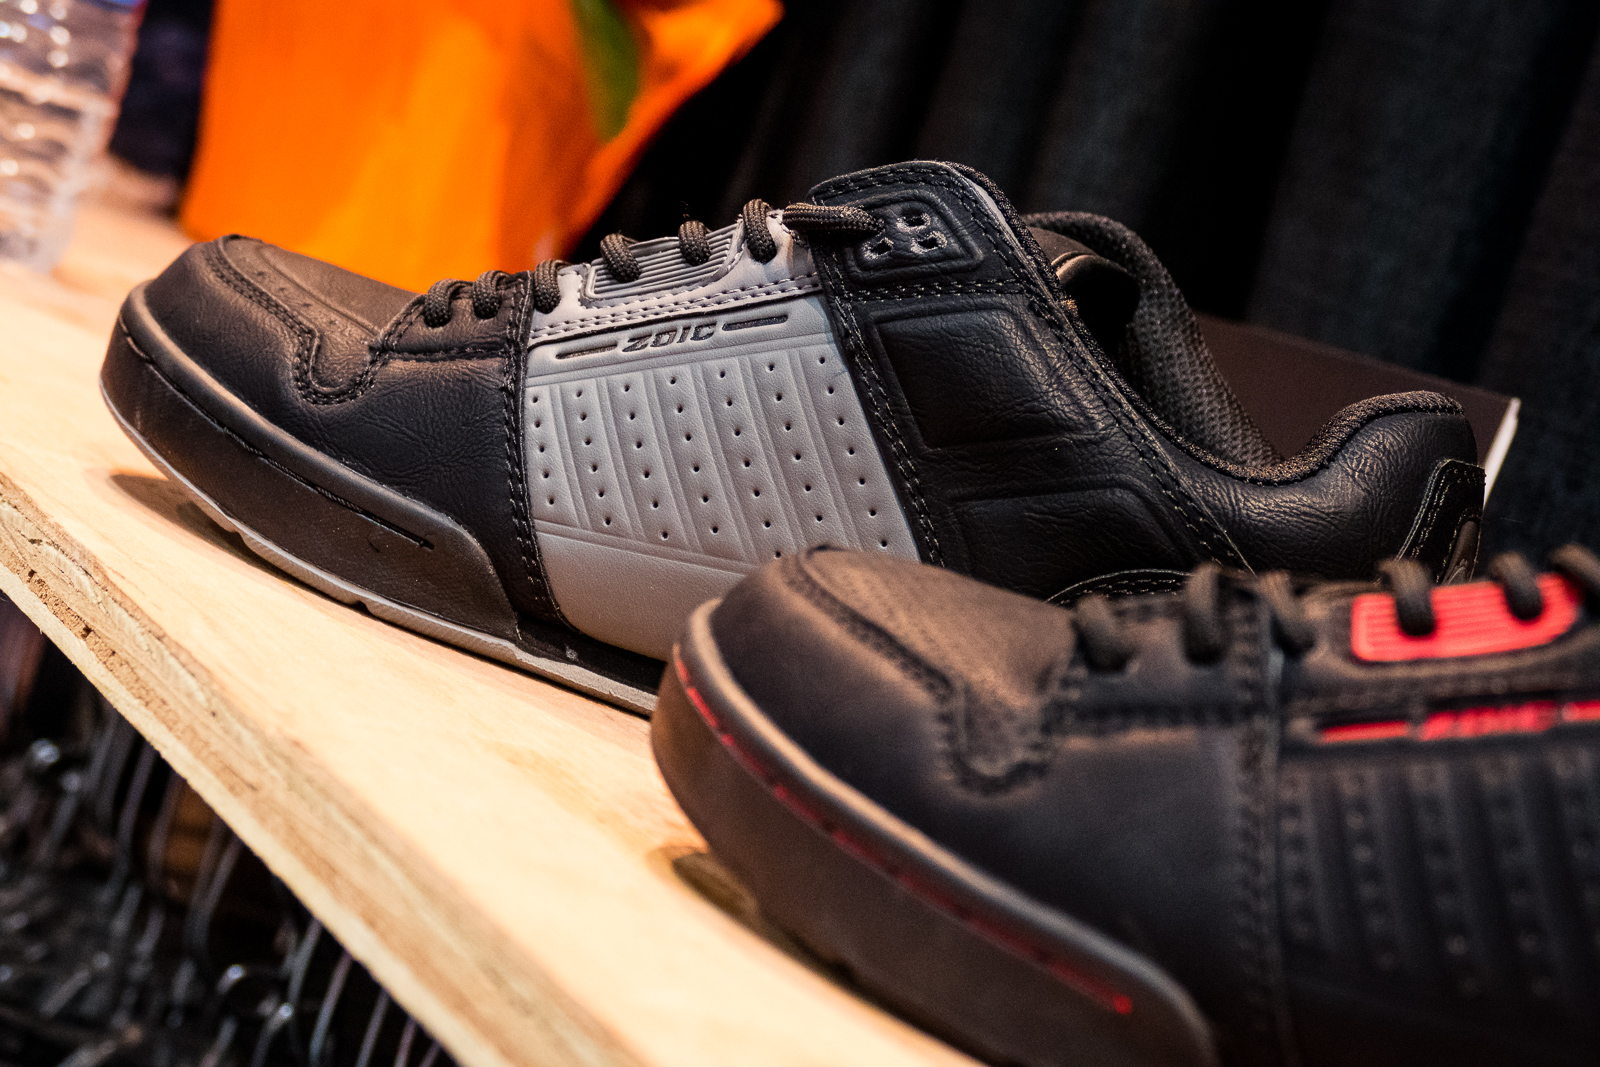 Zoic Flat Pedal Shoes - 2016 Protective Gear And Apparel At Interbike - Mountain Biking Pictures ...